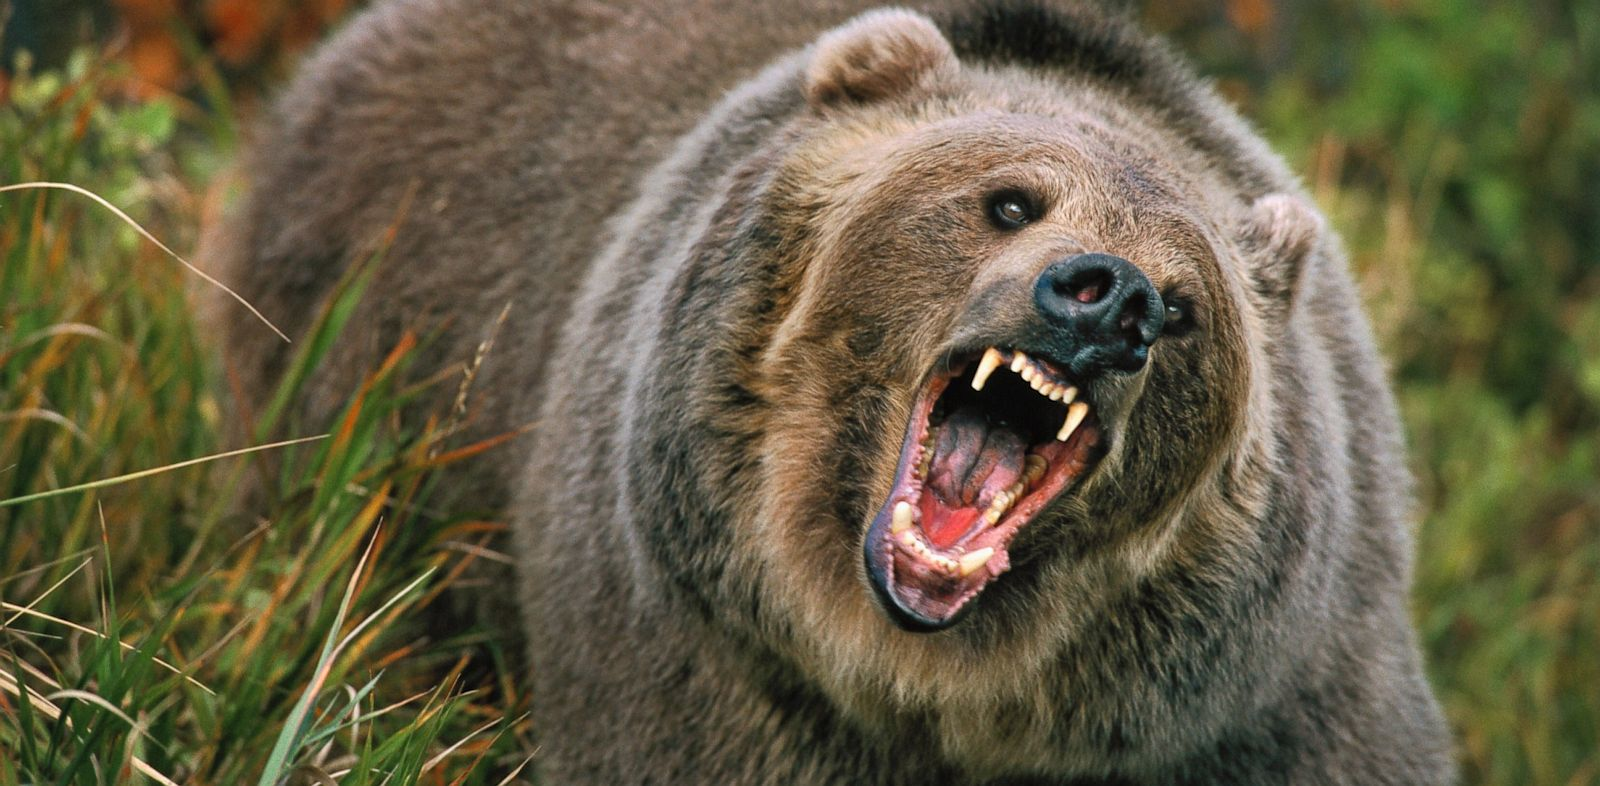 Bear attacks raise safety concerns